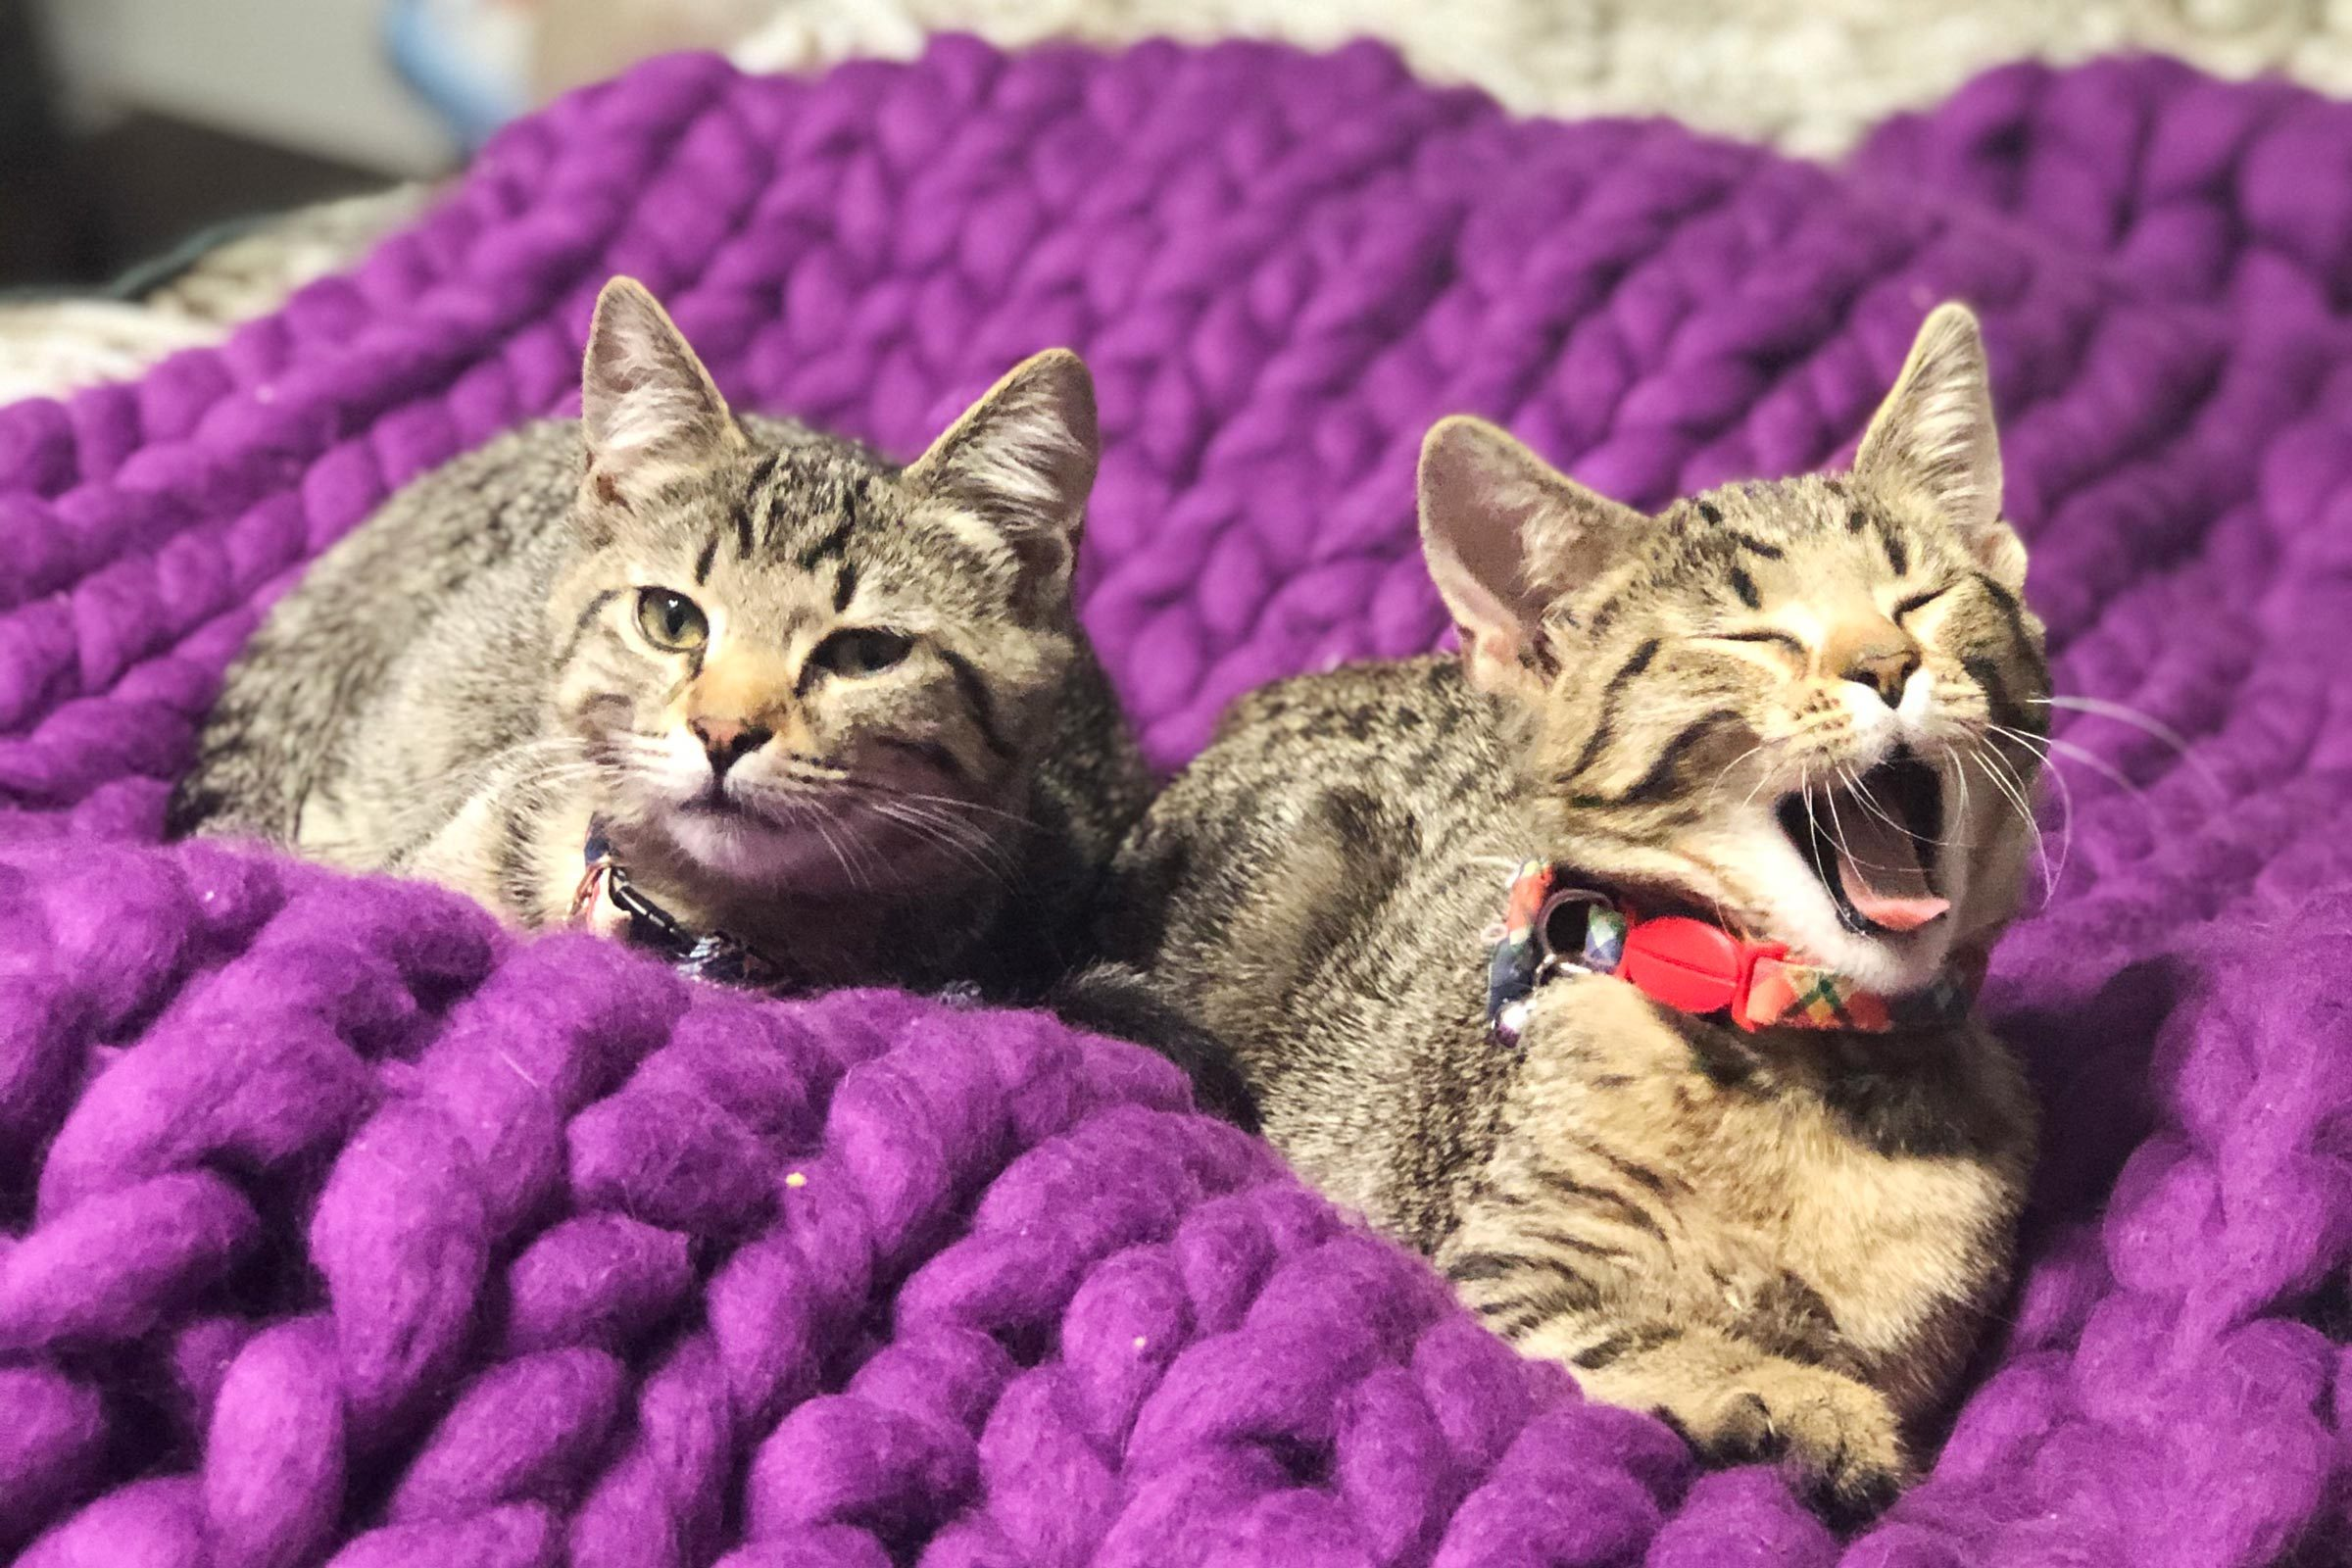 two cats, one yawning, on a bright purple blanket